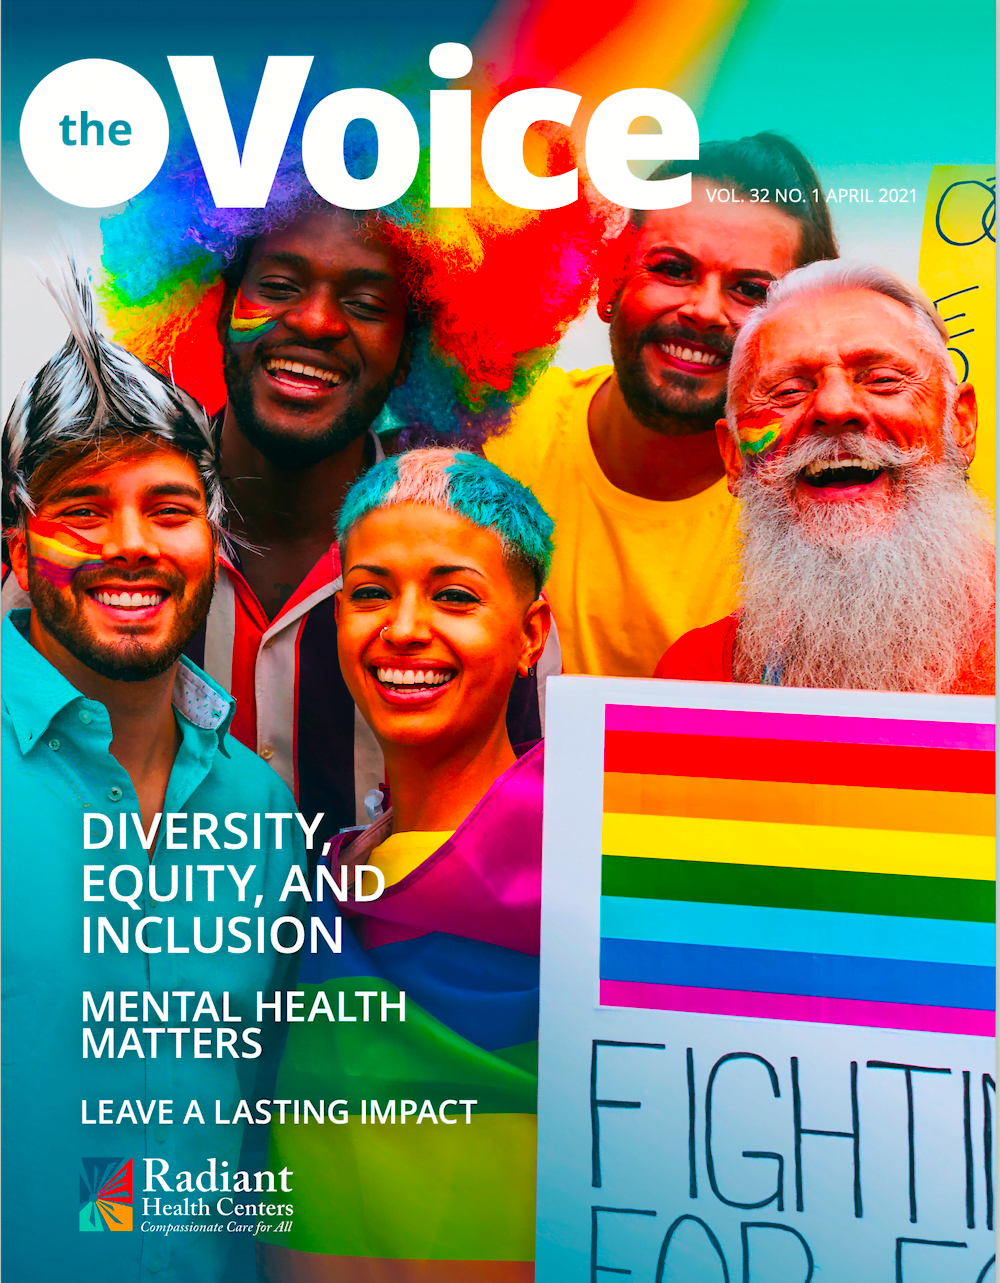 The Voice April 2021 Issue – Radiant Health Centers